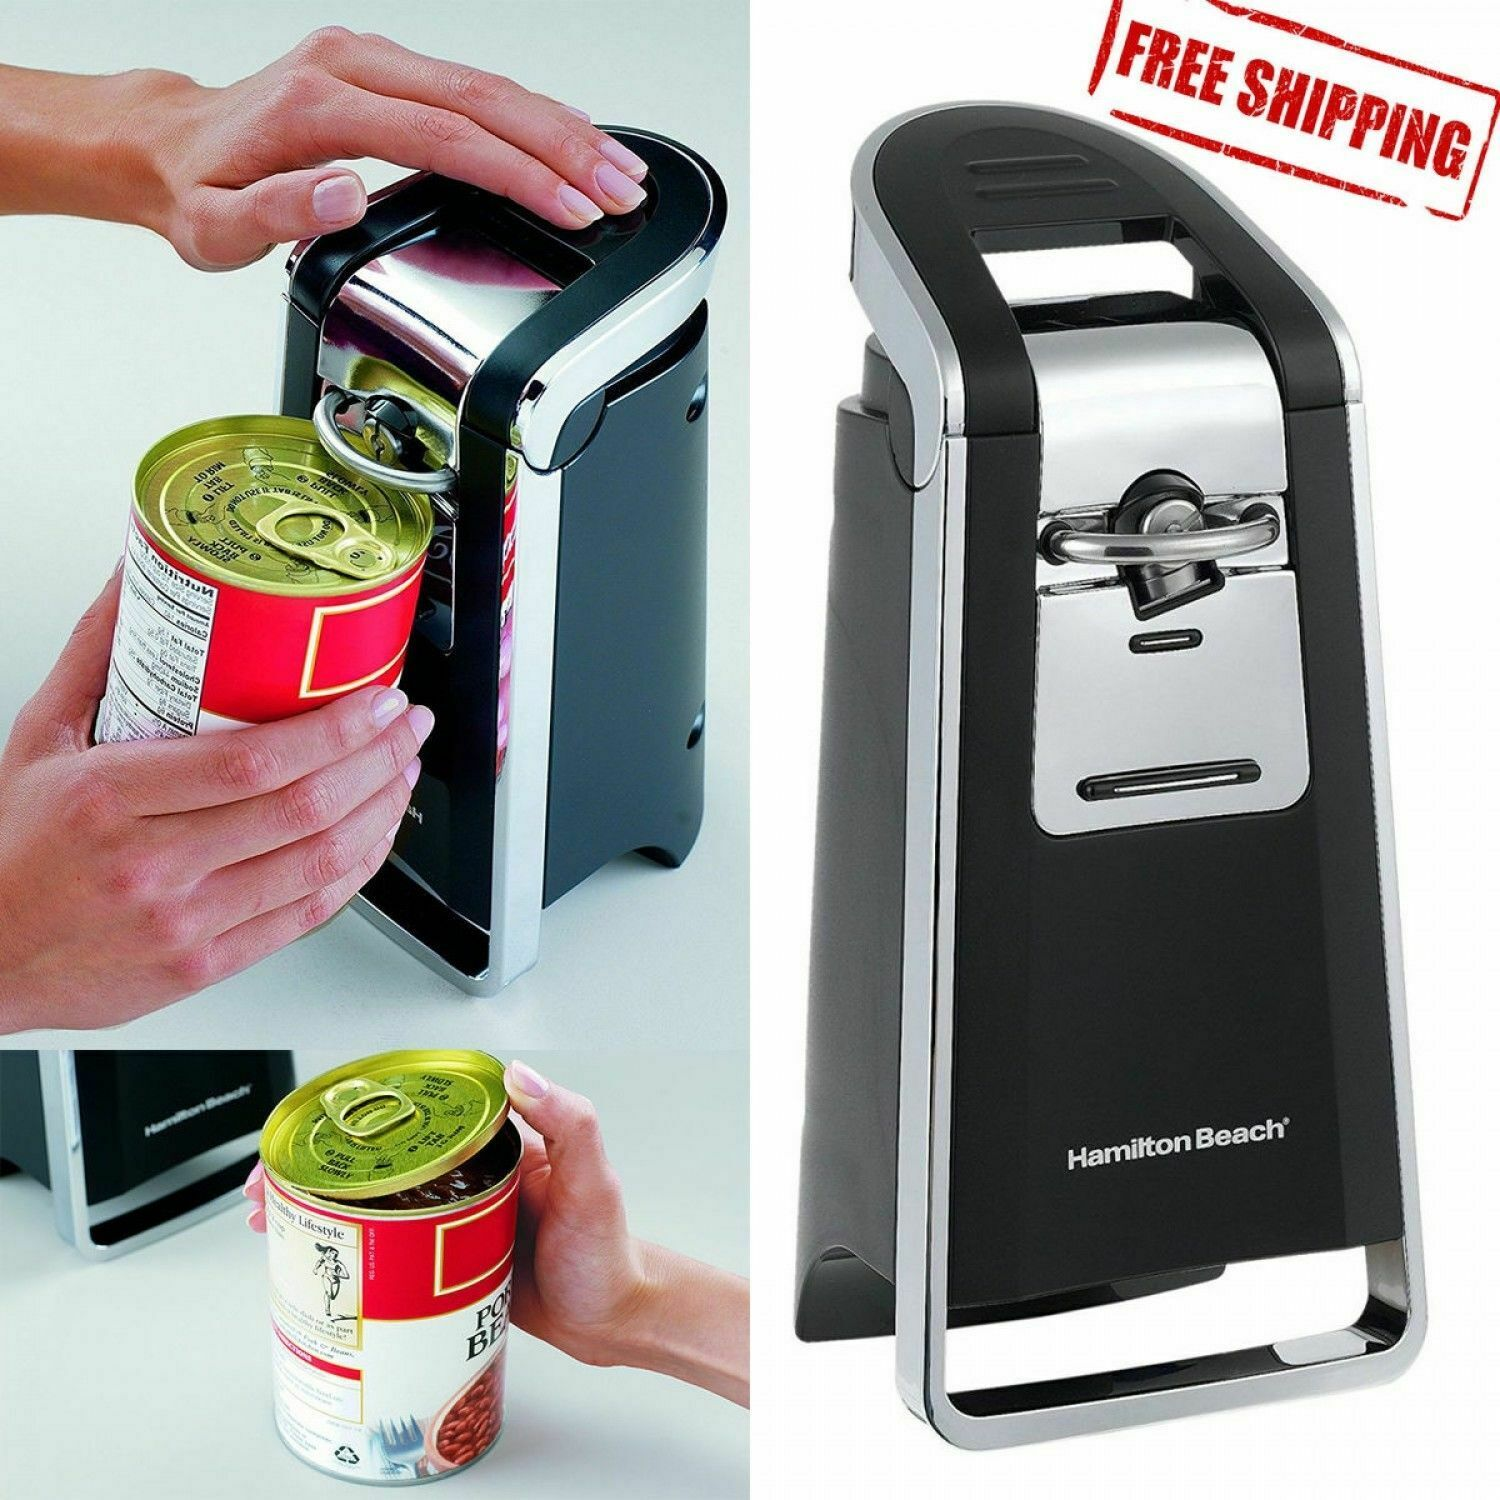 Hamilton Beach Electric Can Opener Smooth Edge Touch Commerc